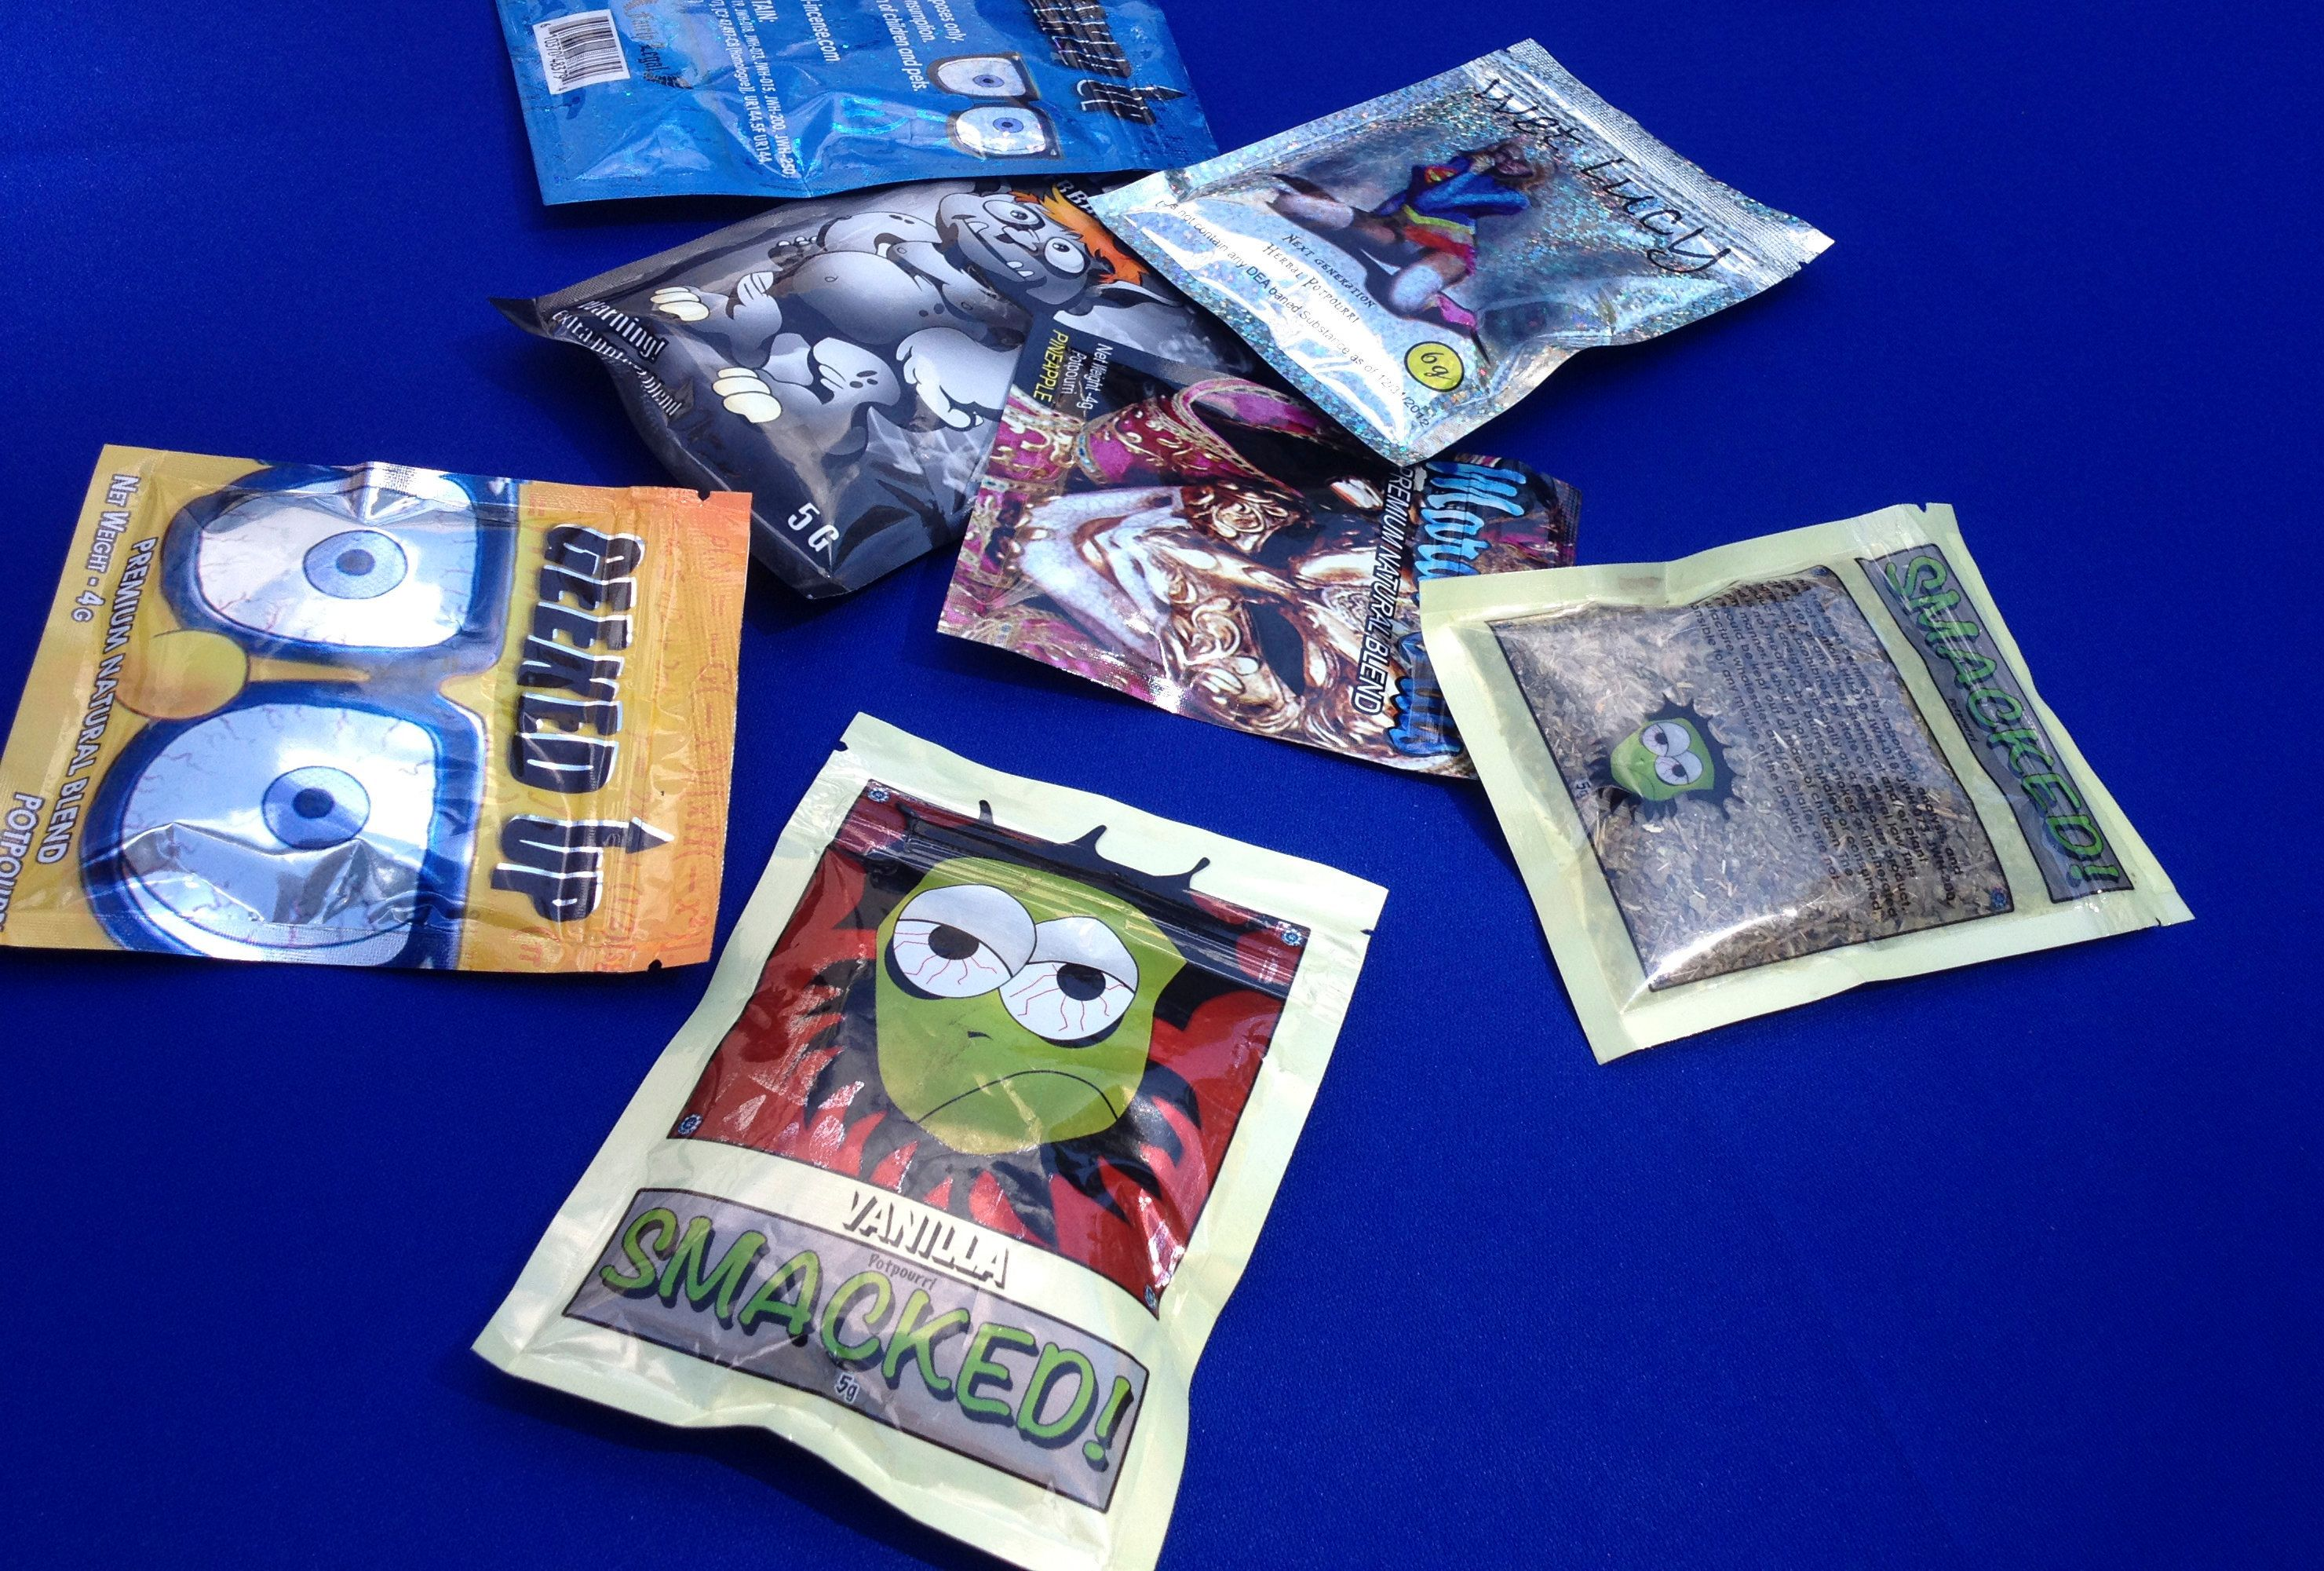 Packets of synthetic marijuana illegally sold in New York City are put on display at a news conference held by New York state